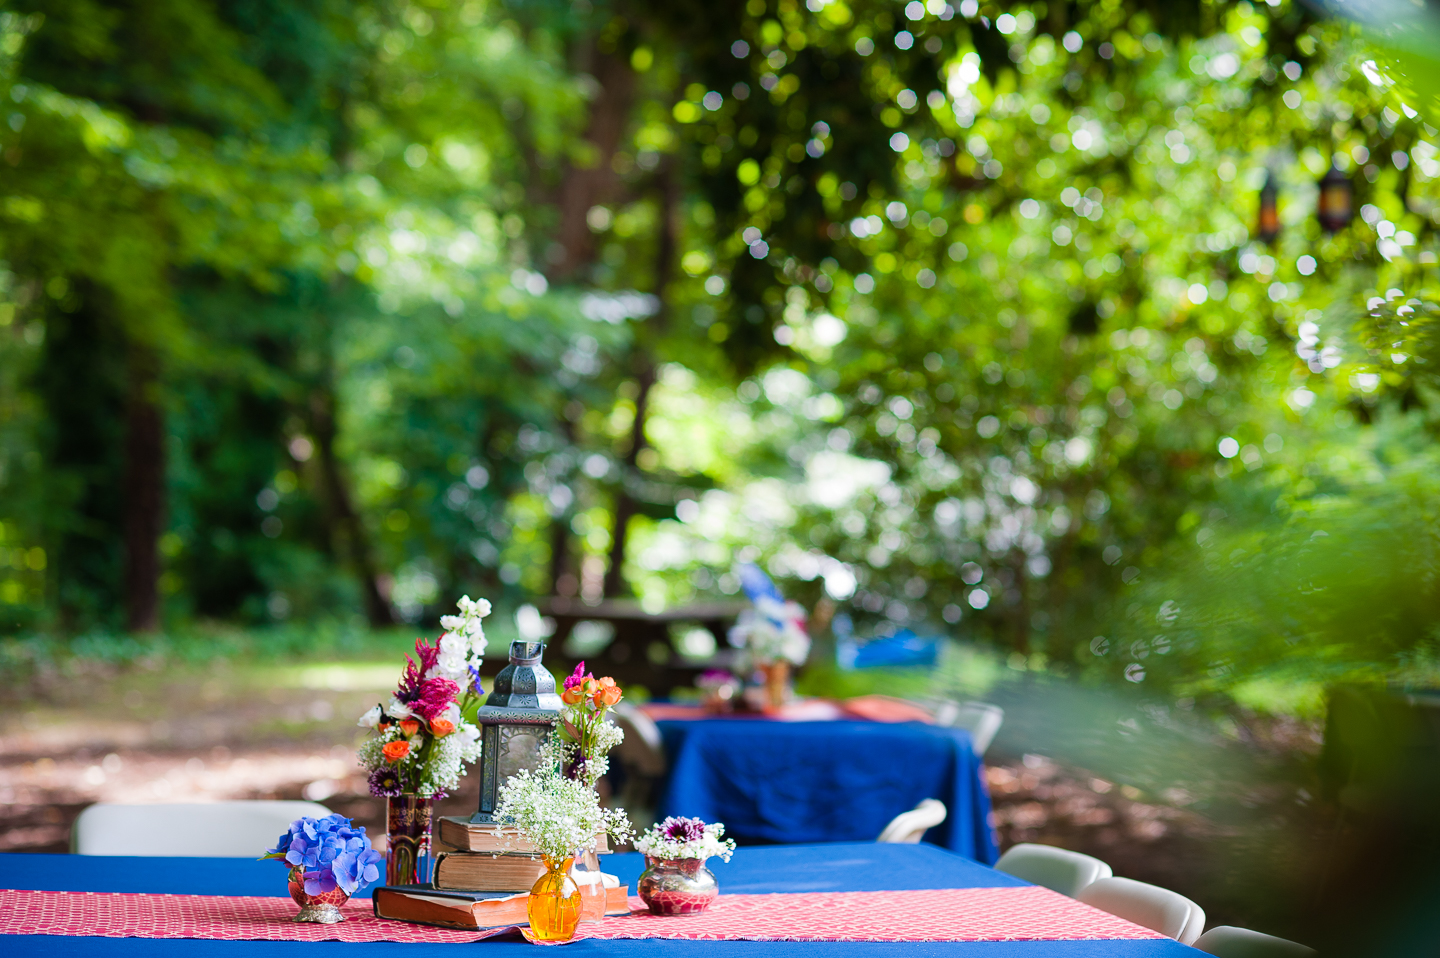 picnic tables with blue table clothes and handpicked flowers were the feature of this DIY backyard wedding